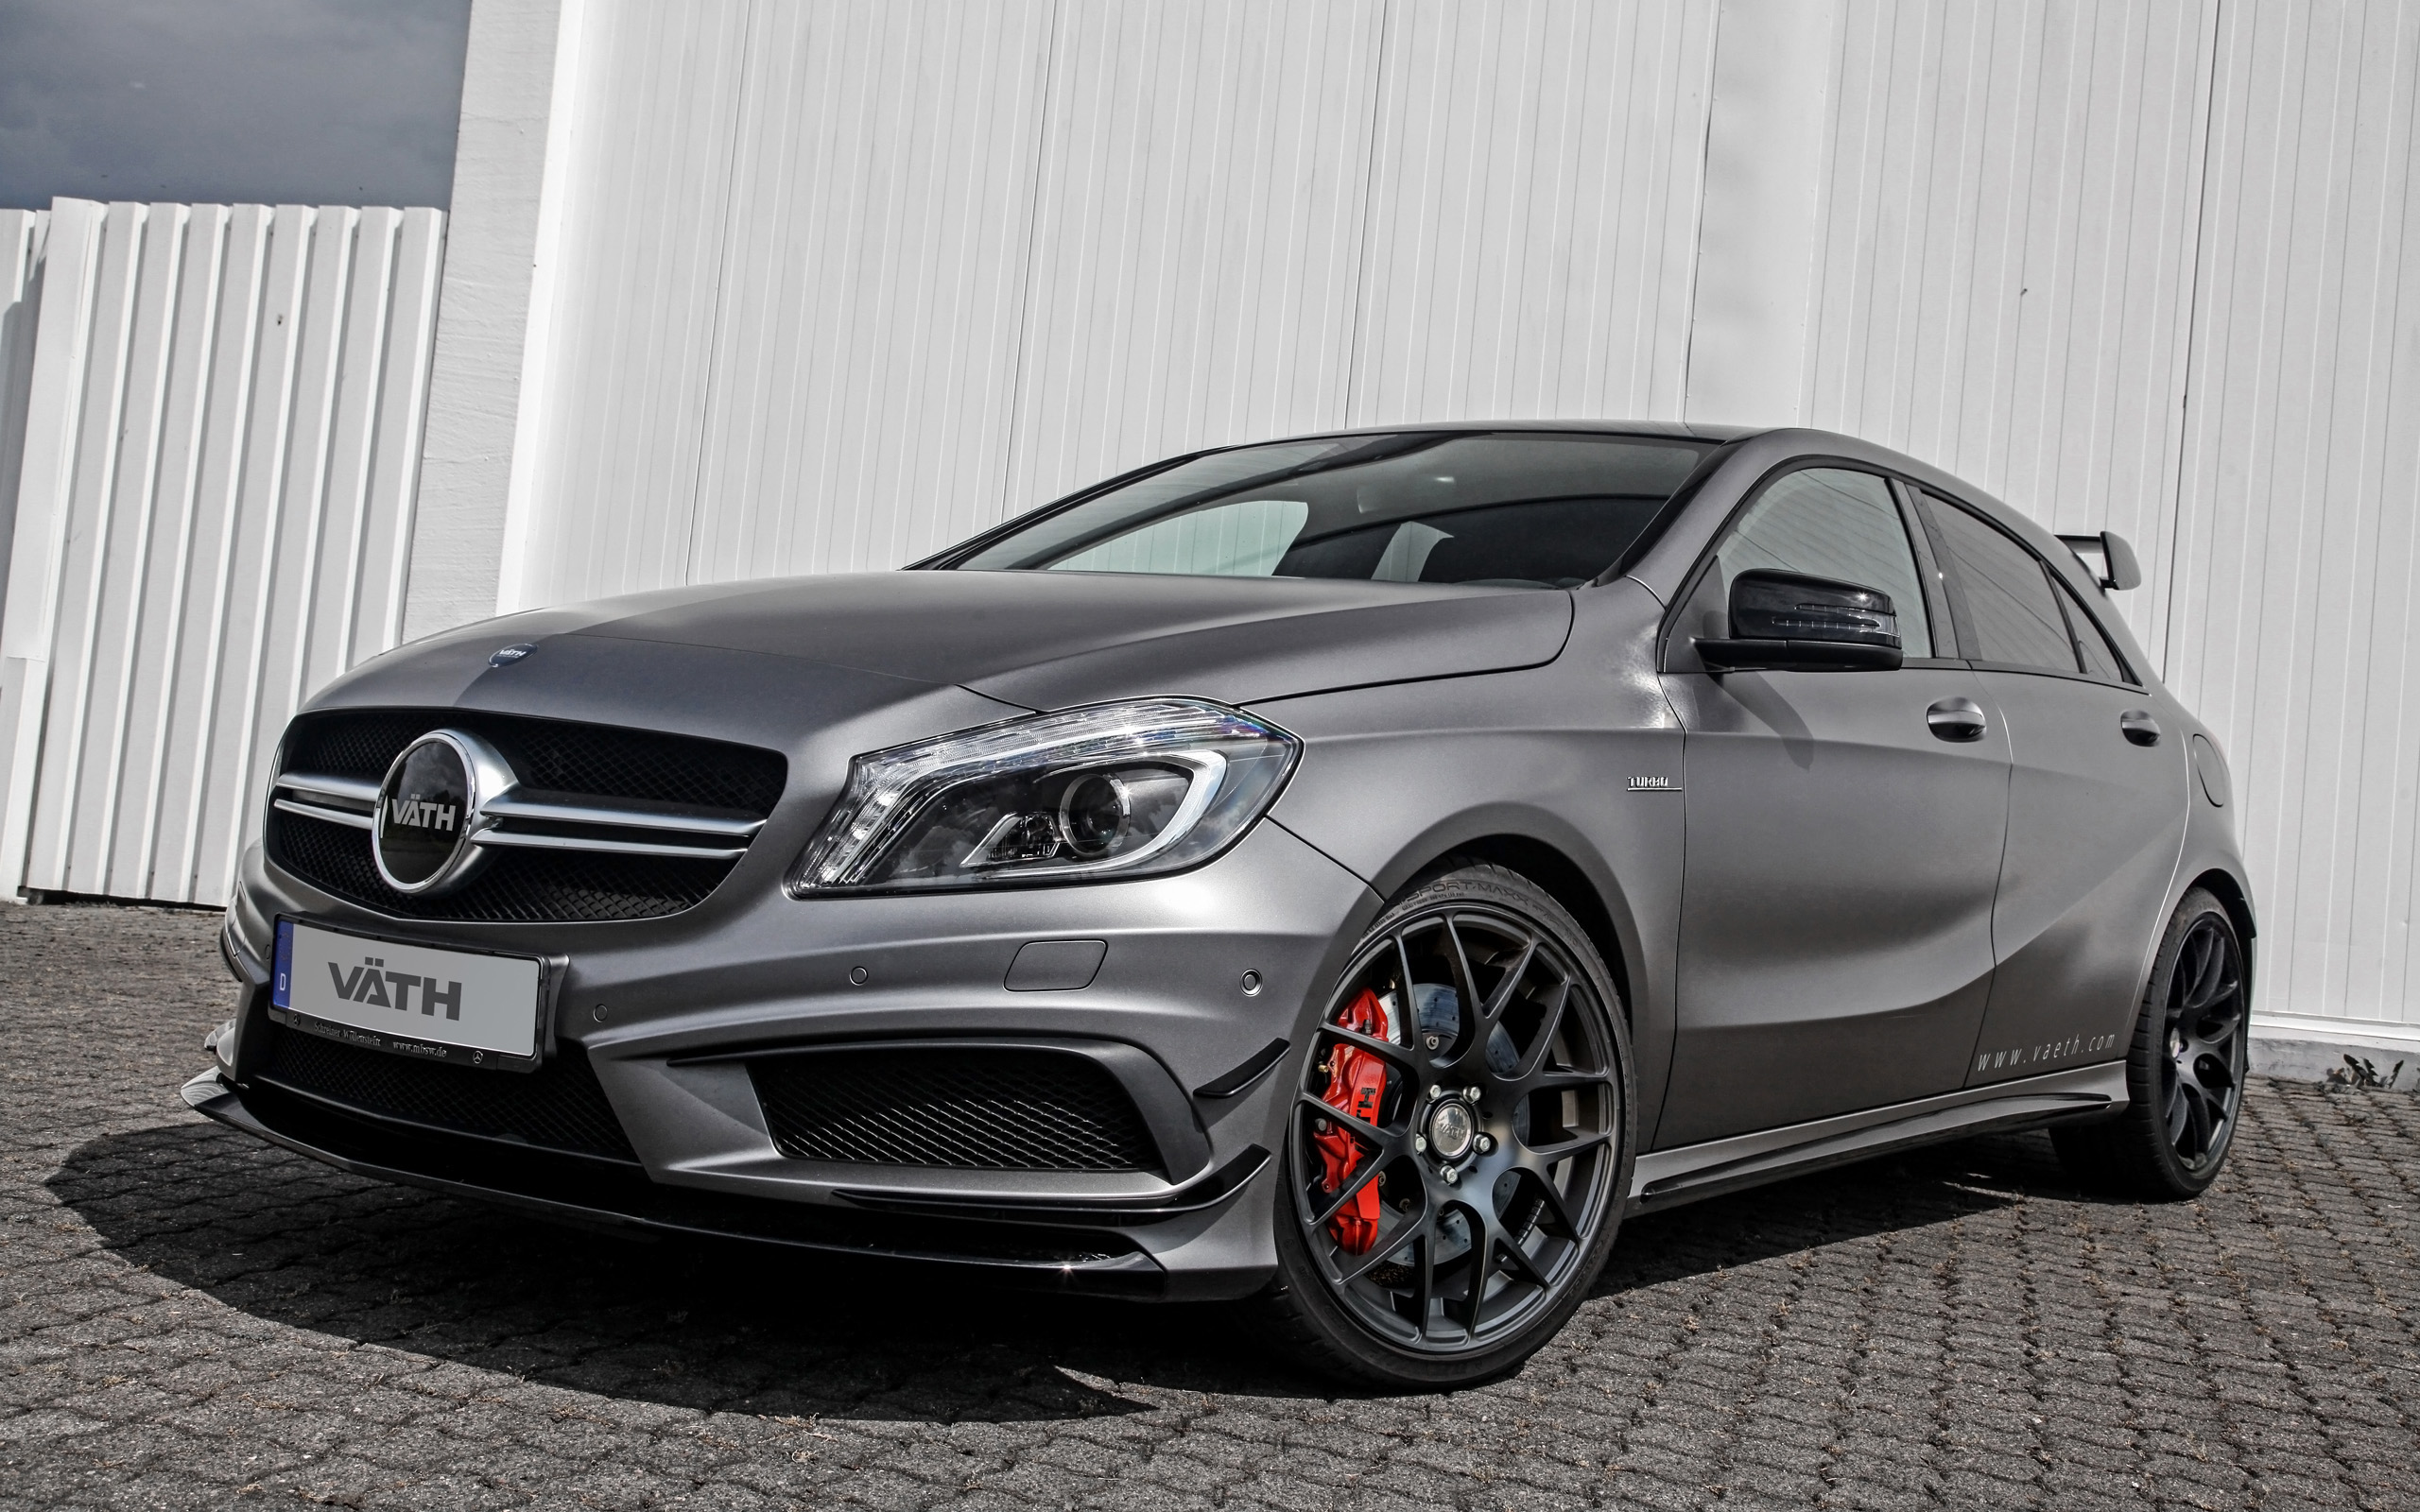 2014 vaeth mercedes benz a45 amg wallpaper hd car for Mercedes benz cars images